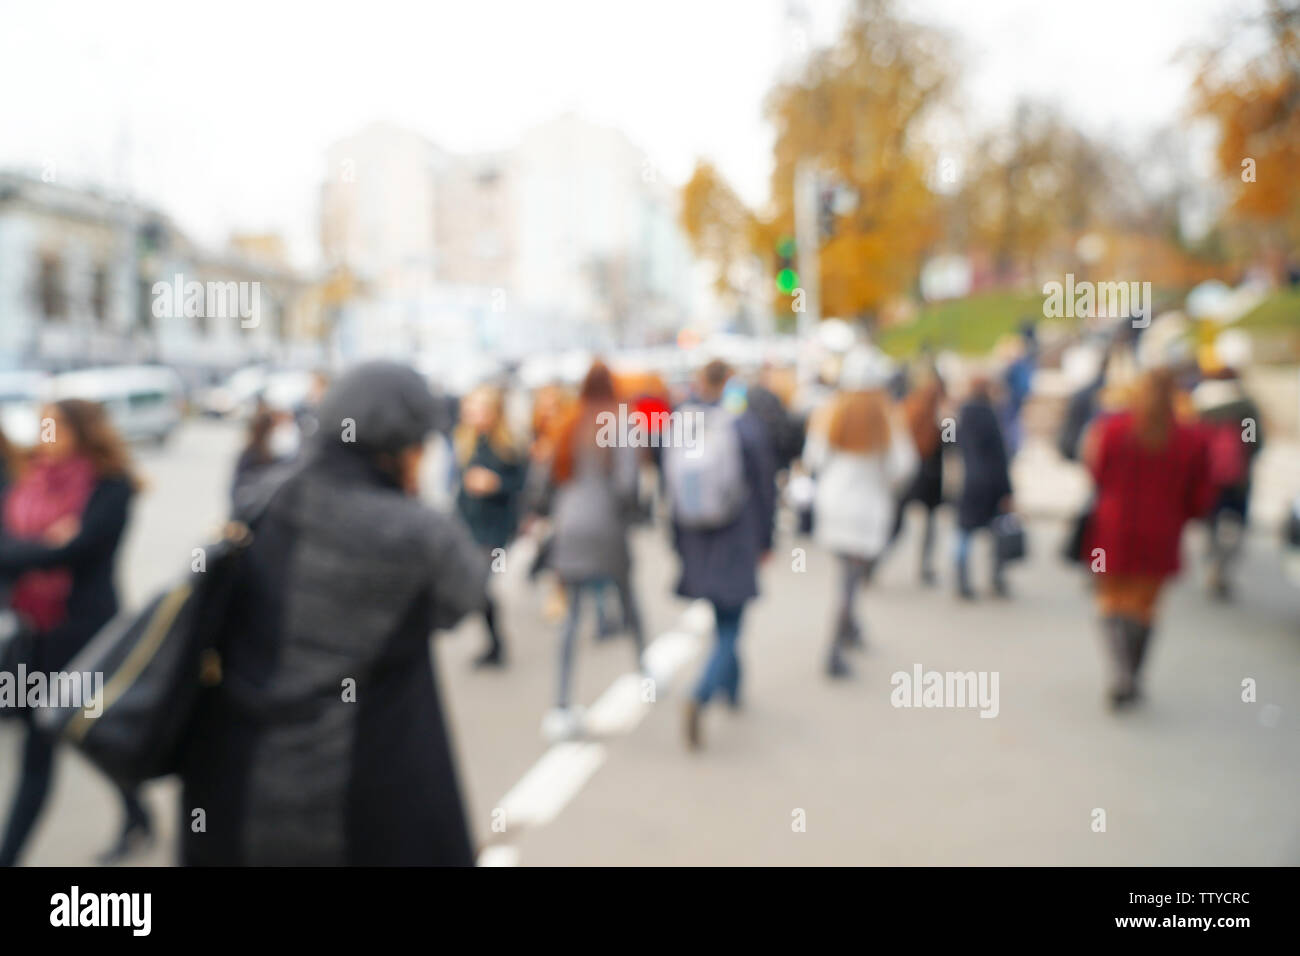 Blurred background of crowded city street - Stock Image